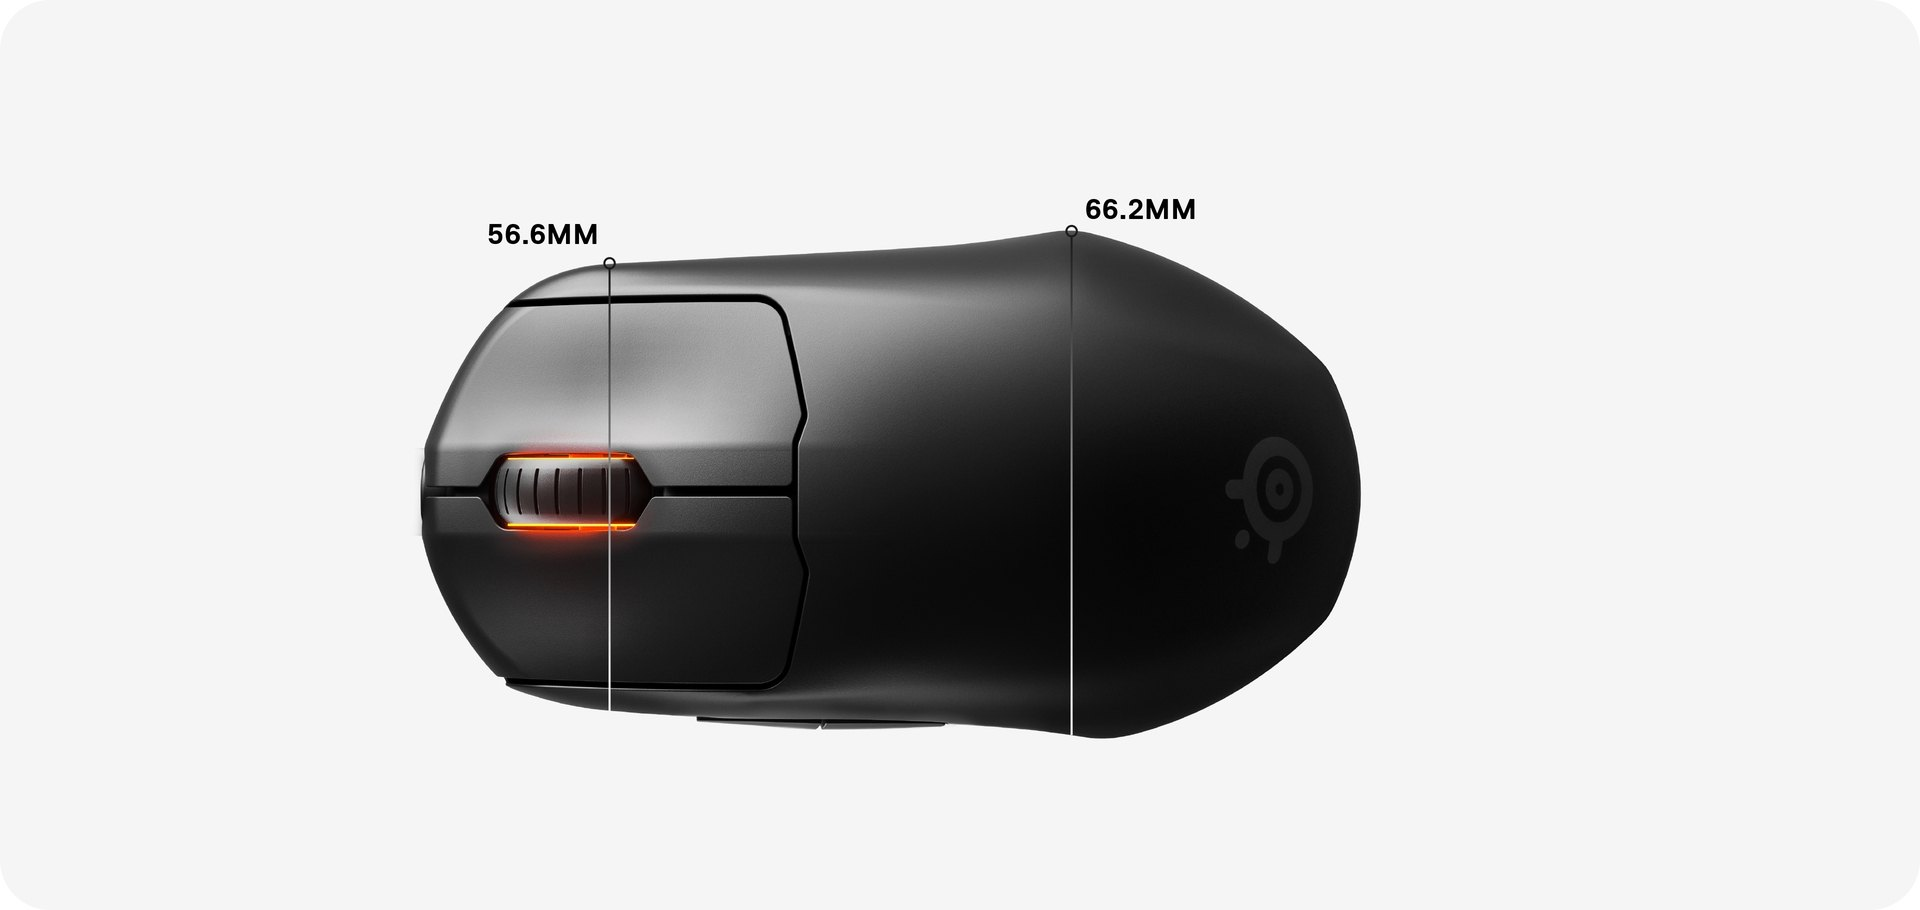 Overhead view of the Prime Mini Wireless mouse dimensions, with width listed as 56,6 mm across the scroll wheel and 66,2 mm width listed across the widest part of the mouse.